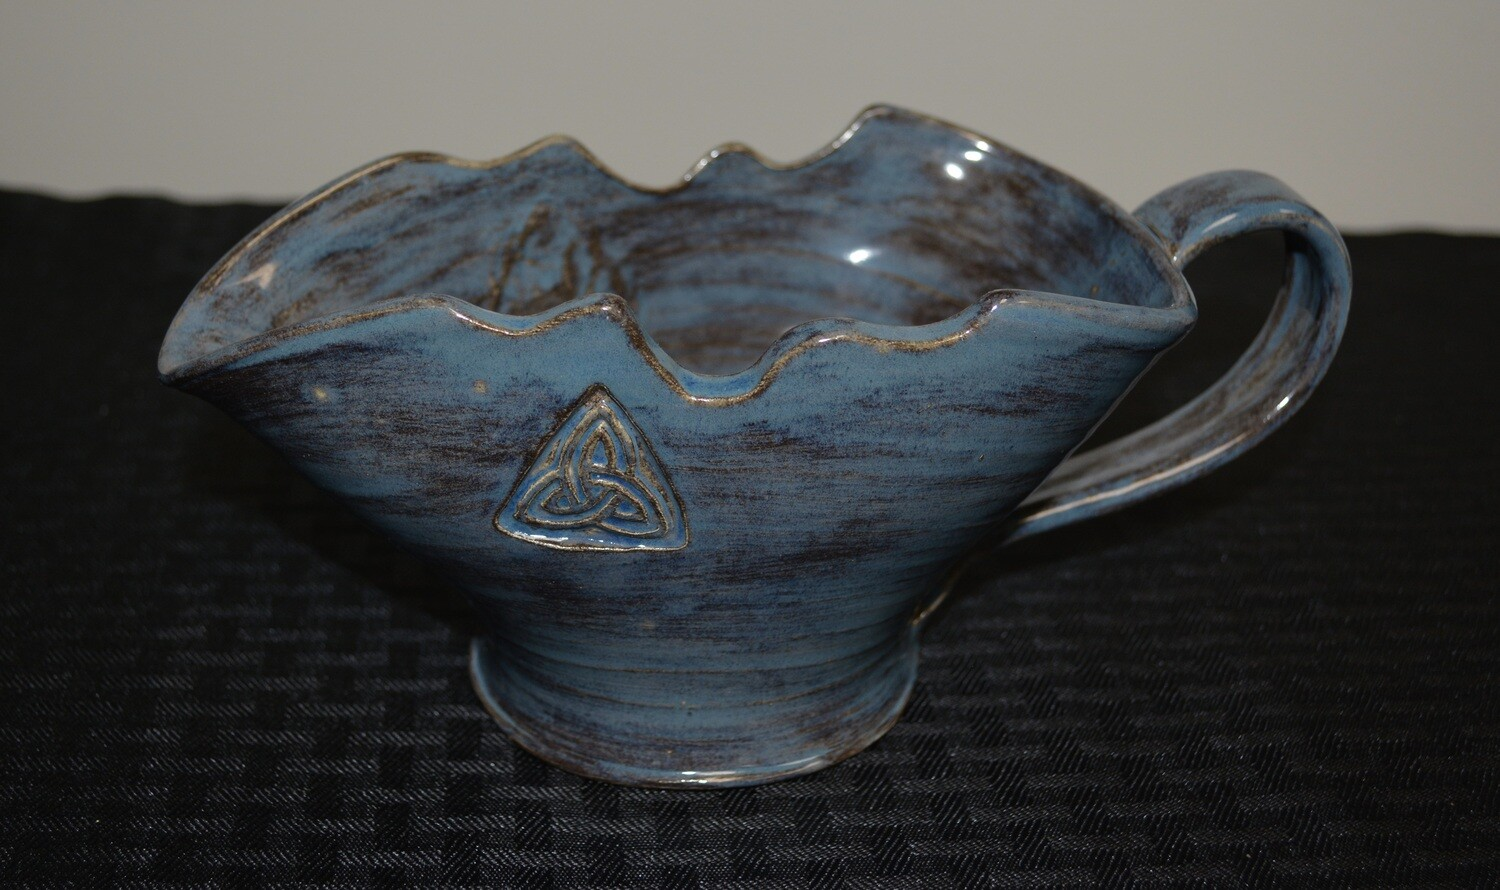 Brushed Blue Gravy Pitcher with Celtic Triangle Artwork